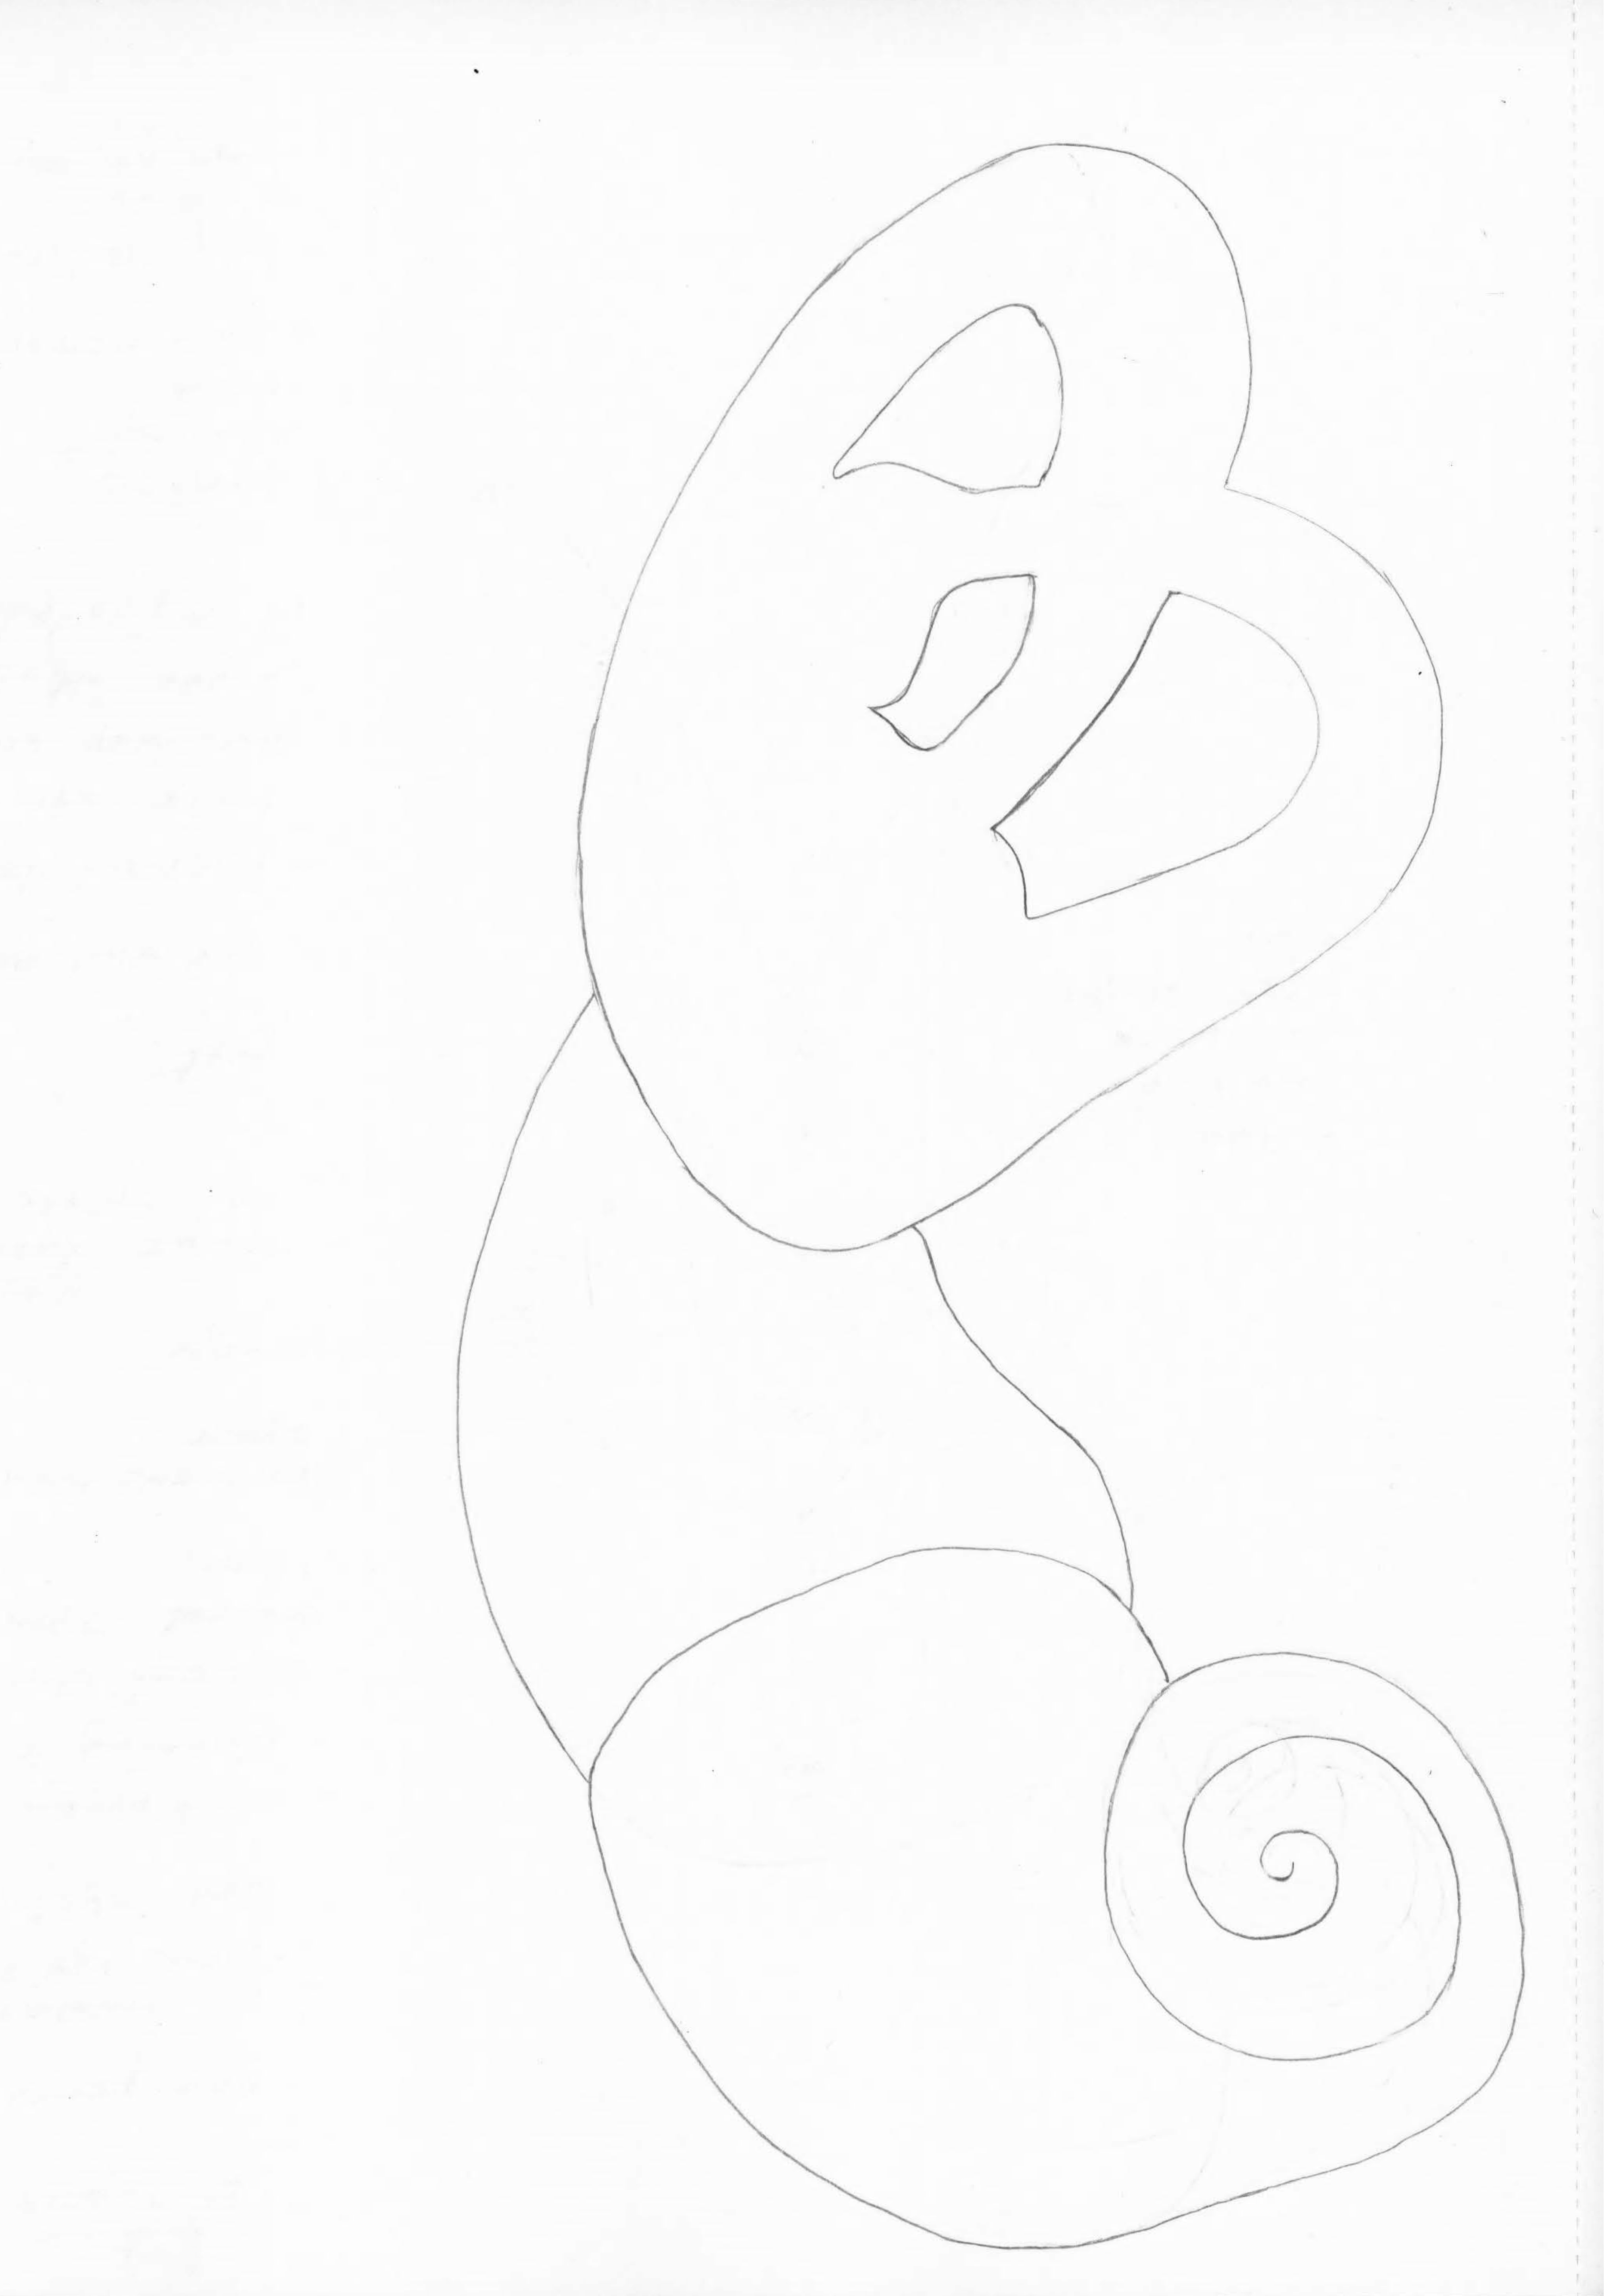 Georgia Sagri, Soma in orgasm as ear, 2017, pencil on paper, 29.5 × 20 cm